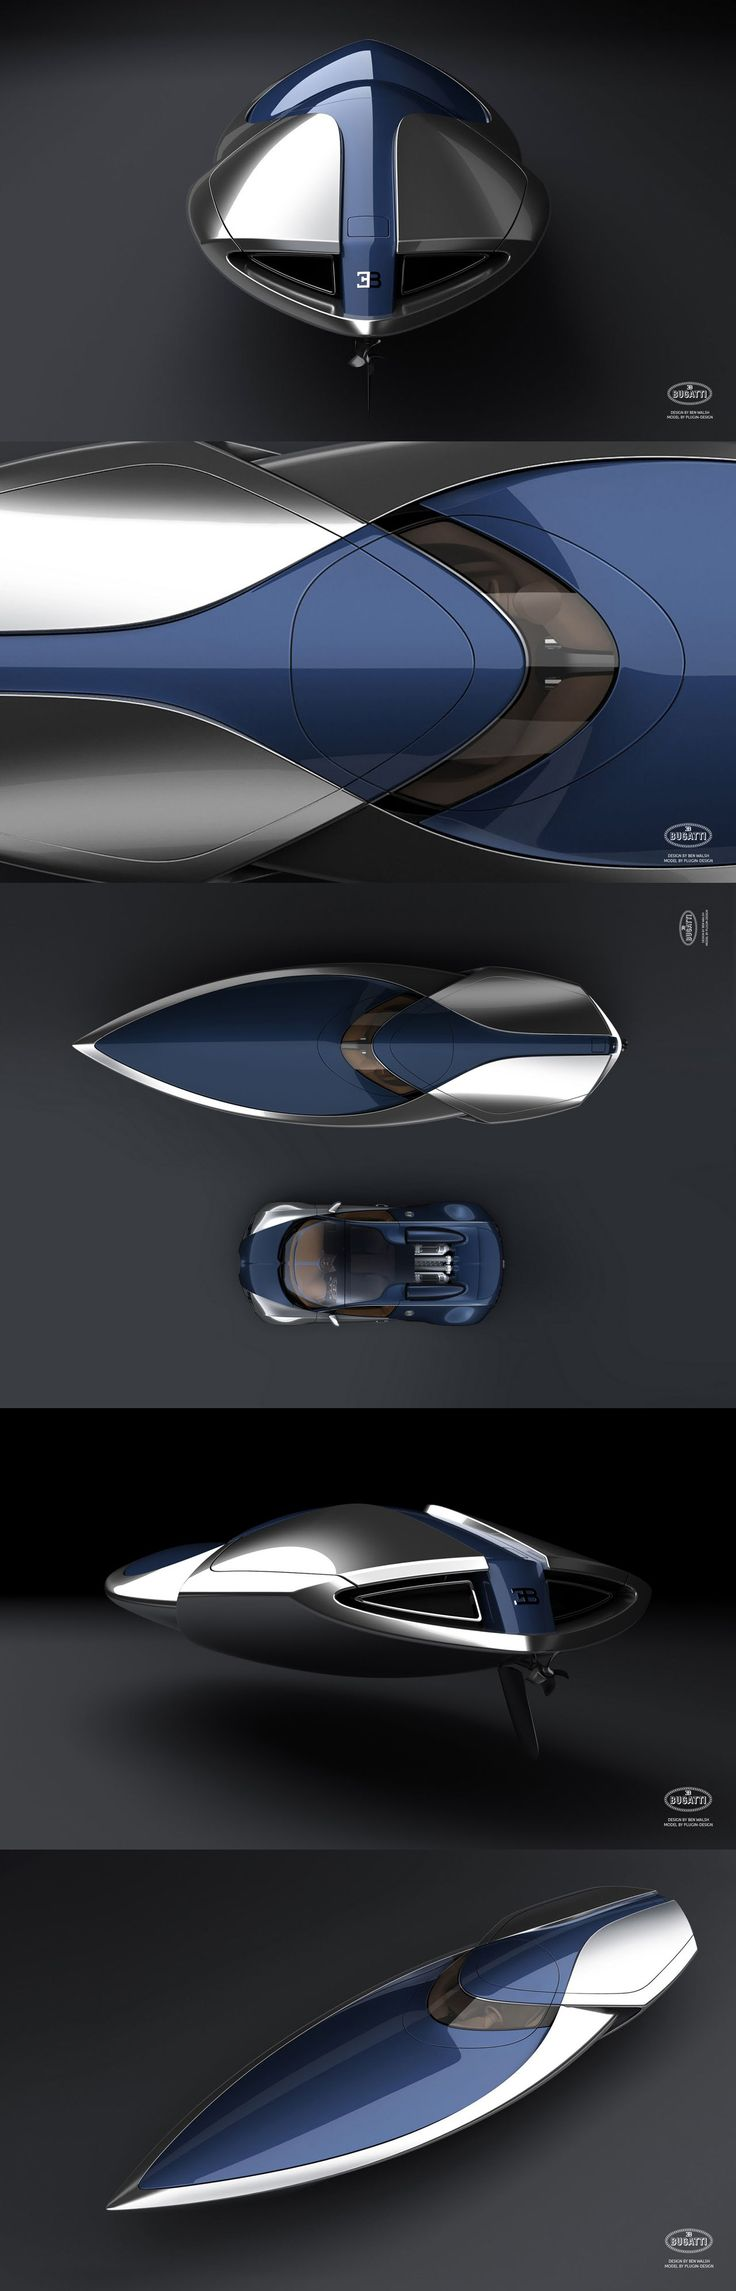 """Bugatti speedboat design inspired by """"Sang-Bleu"""" colored Bugatti Veyron. The conceptual boat has a W16 Quad Turbo 1000HP engine.     - designed by Ben Walsh"""